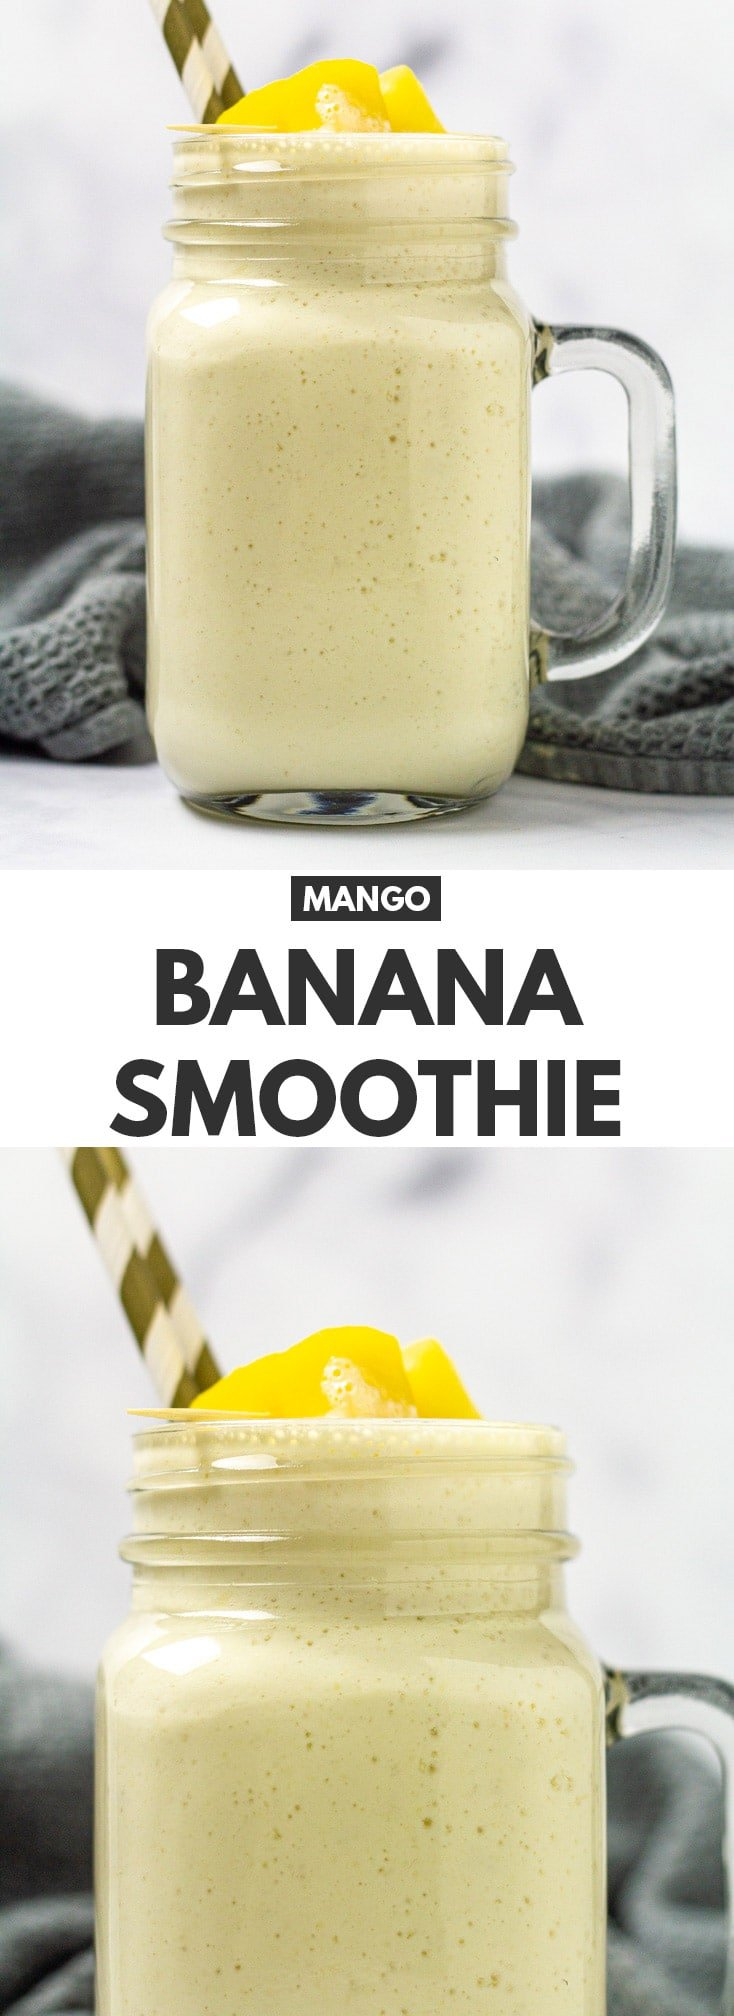 Mango Banana Smoothie - A deliciously thick and creamy banana smoothie that is also bursting with mango flavour. Makes for a quick healthy breakfast, and only requires 5 simple ingredients!